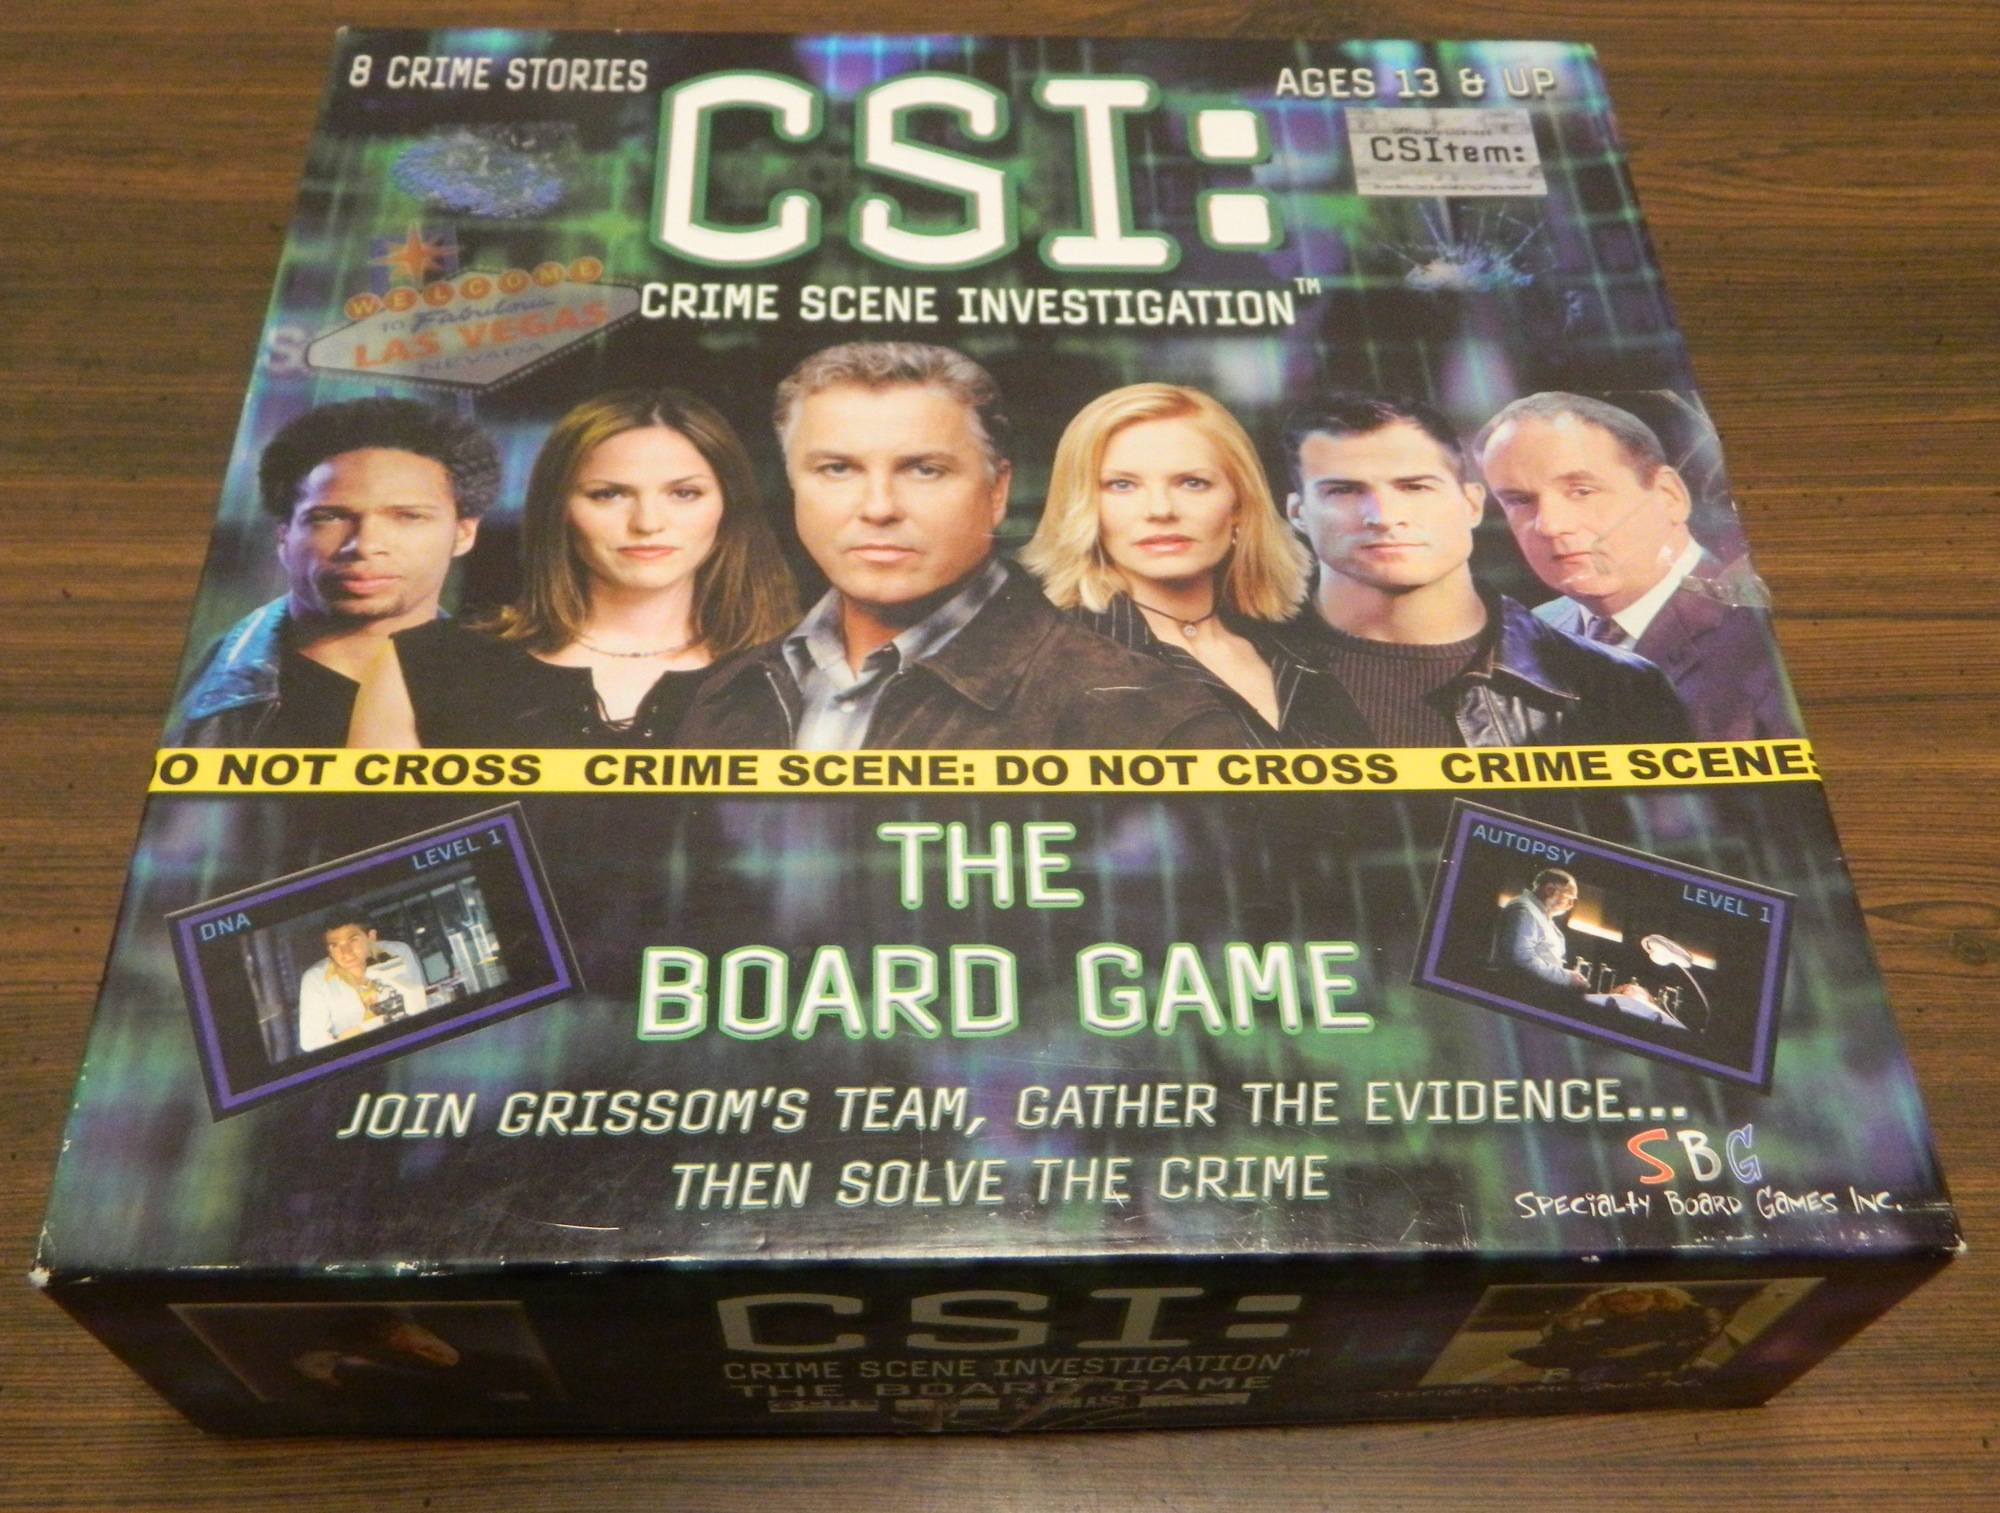 Csi: crime scene investigation the board game board game review.